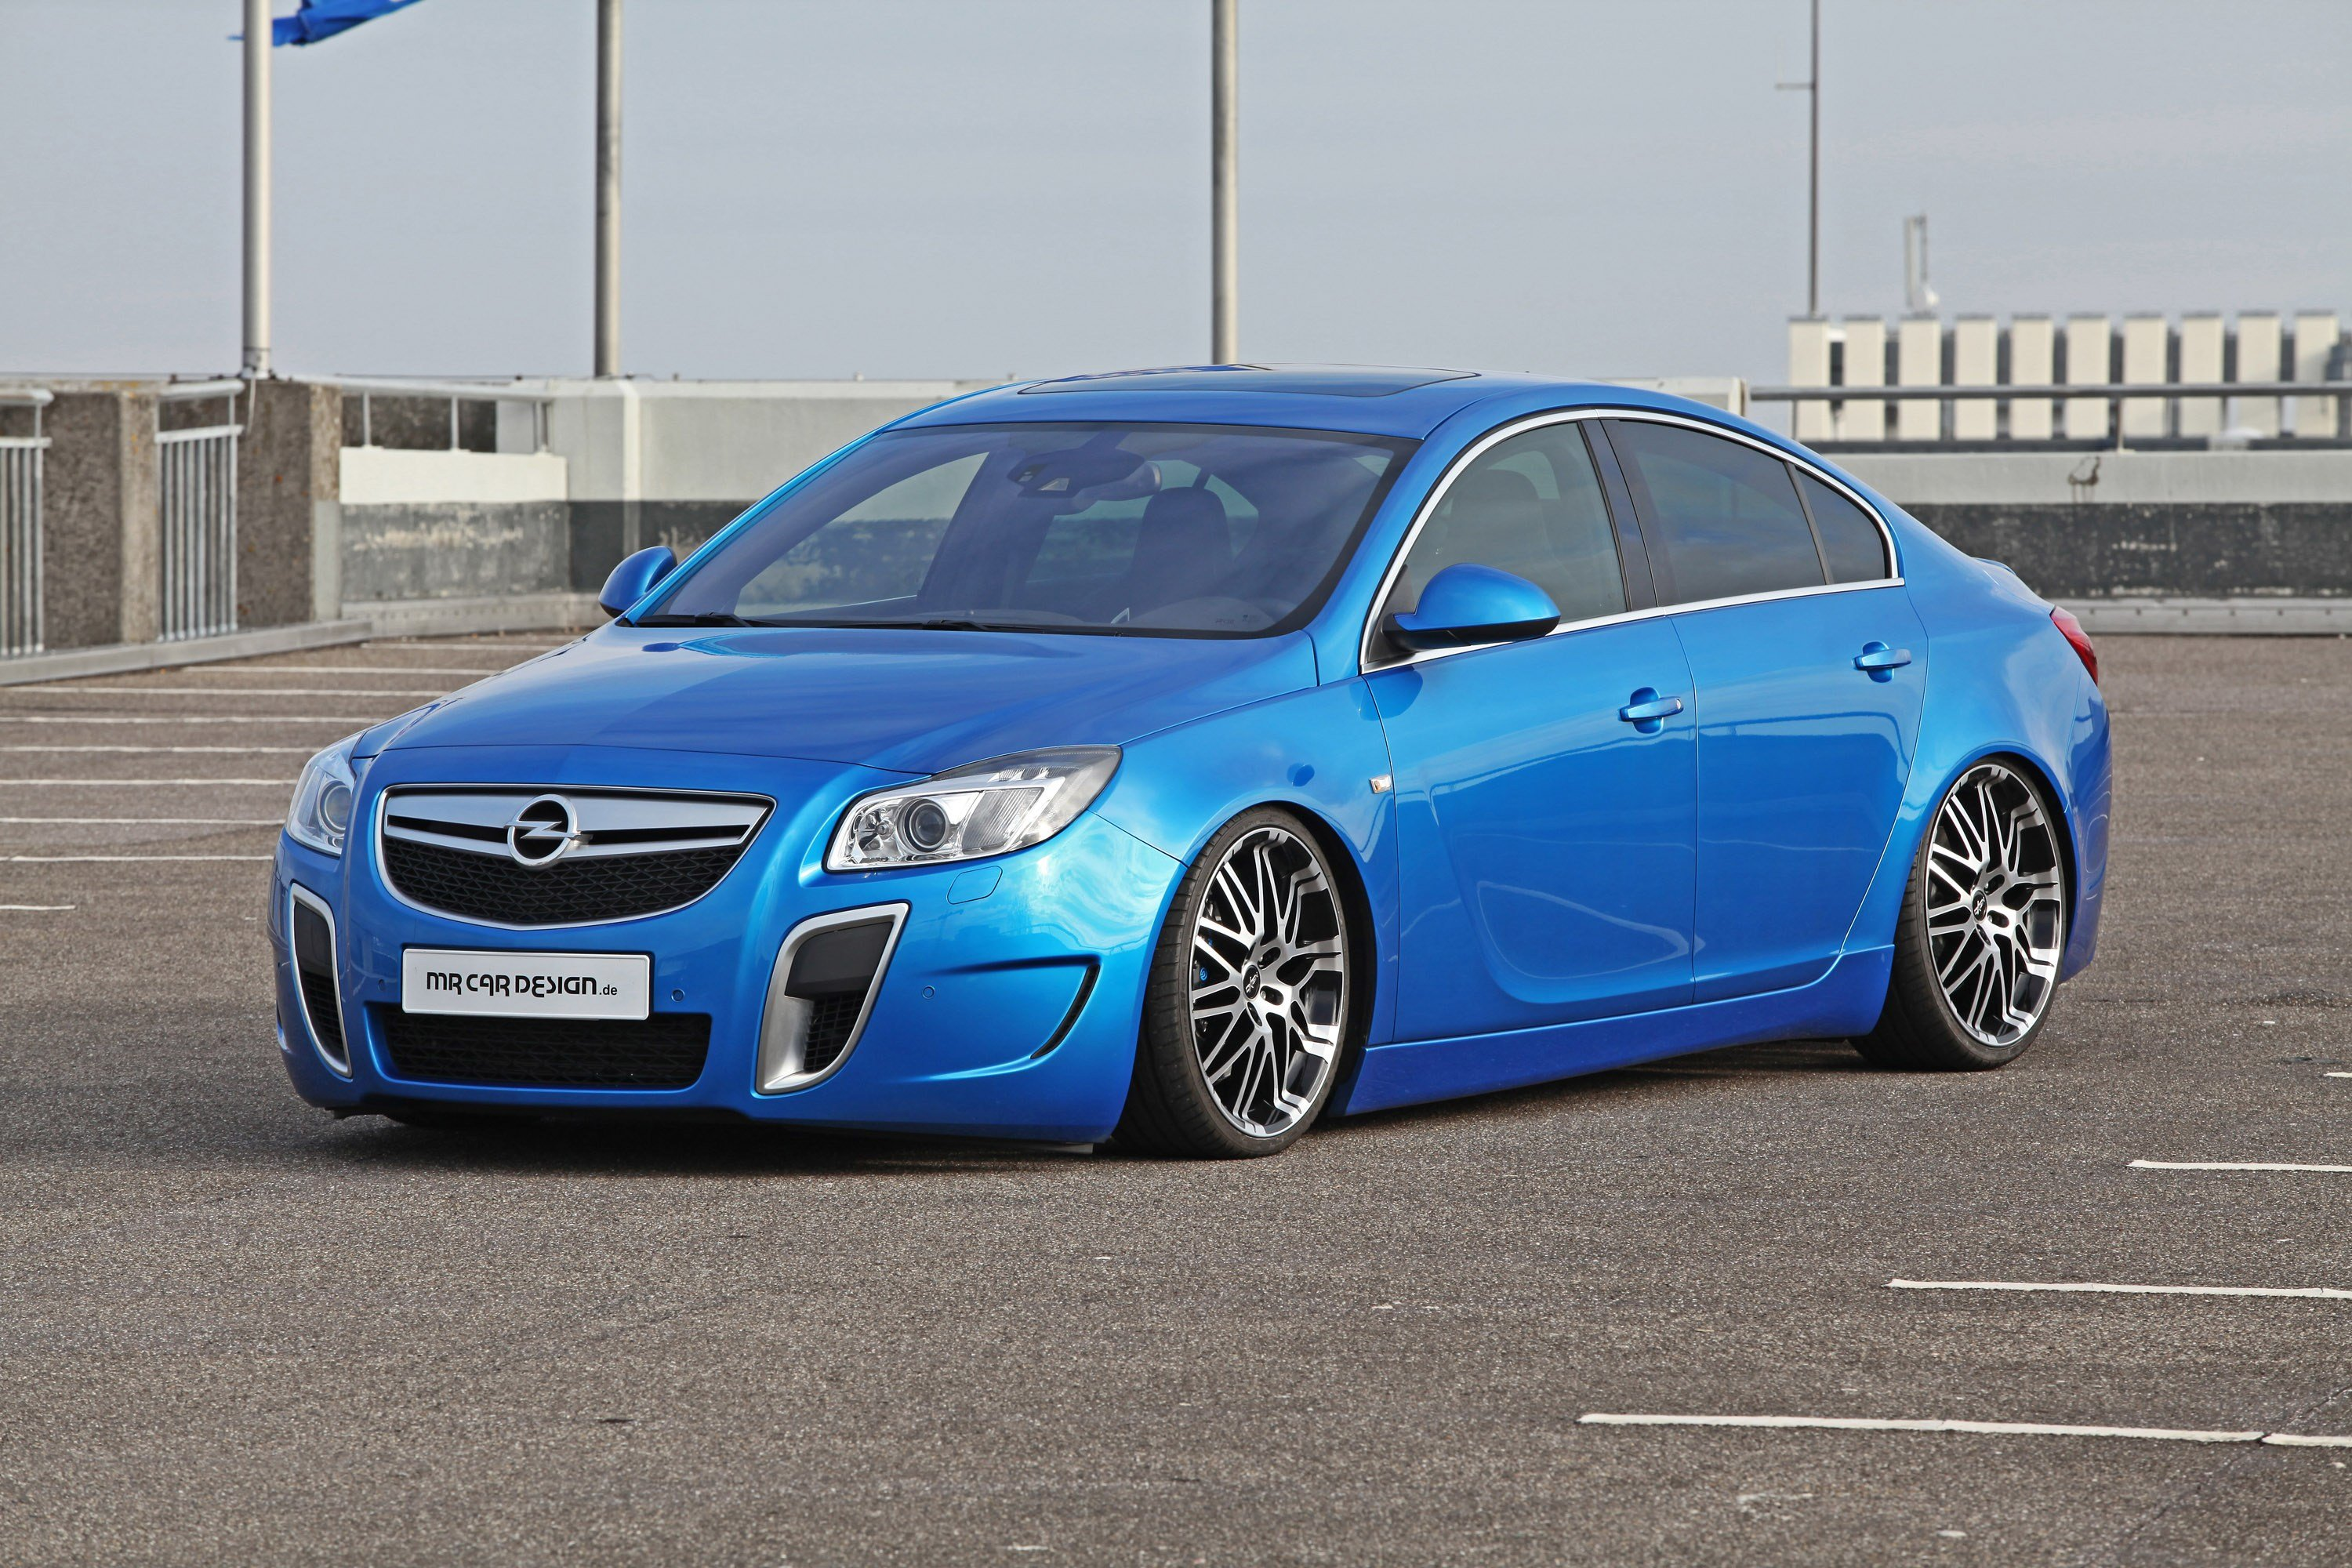 Latest Opel Insignia Opc By Mr Car Design Free Download